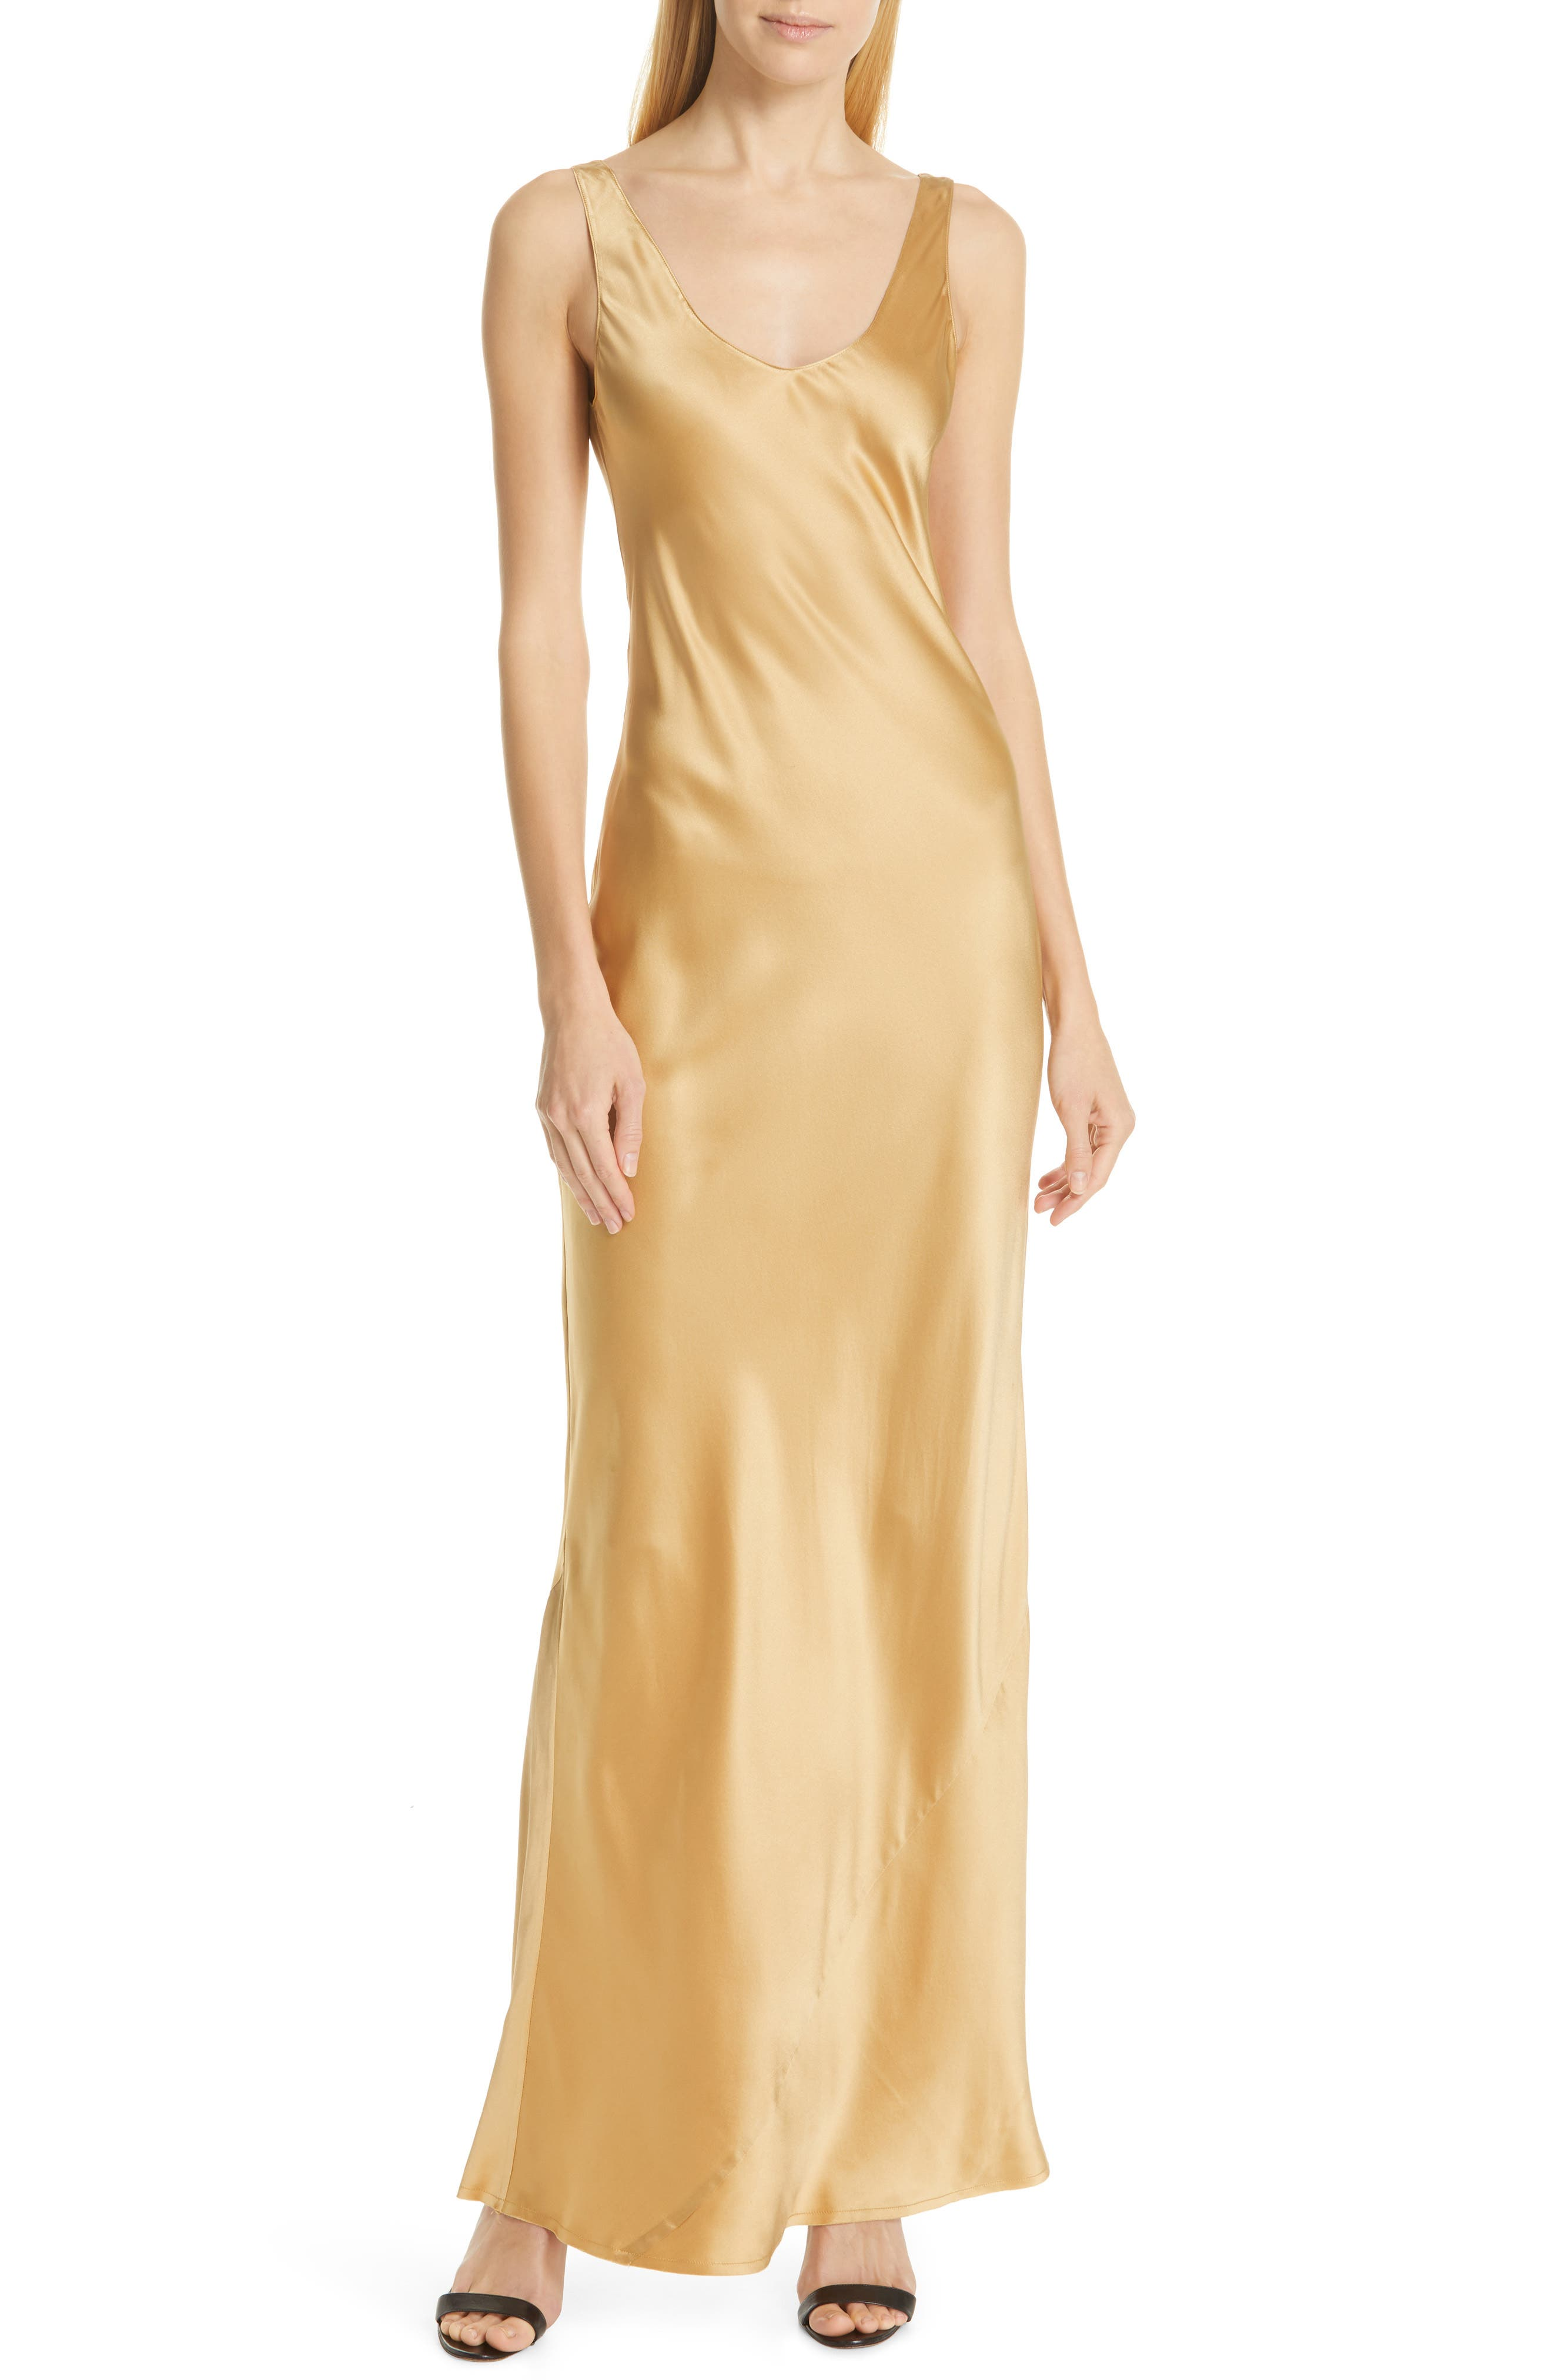 NILI LOTAN Bazile Silk Evening Dress, Main, color, GOLDEN